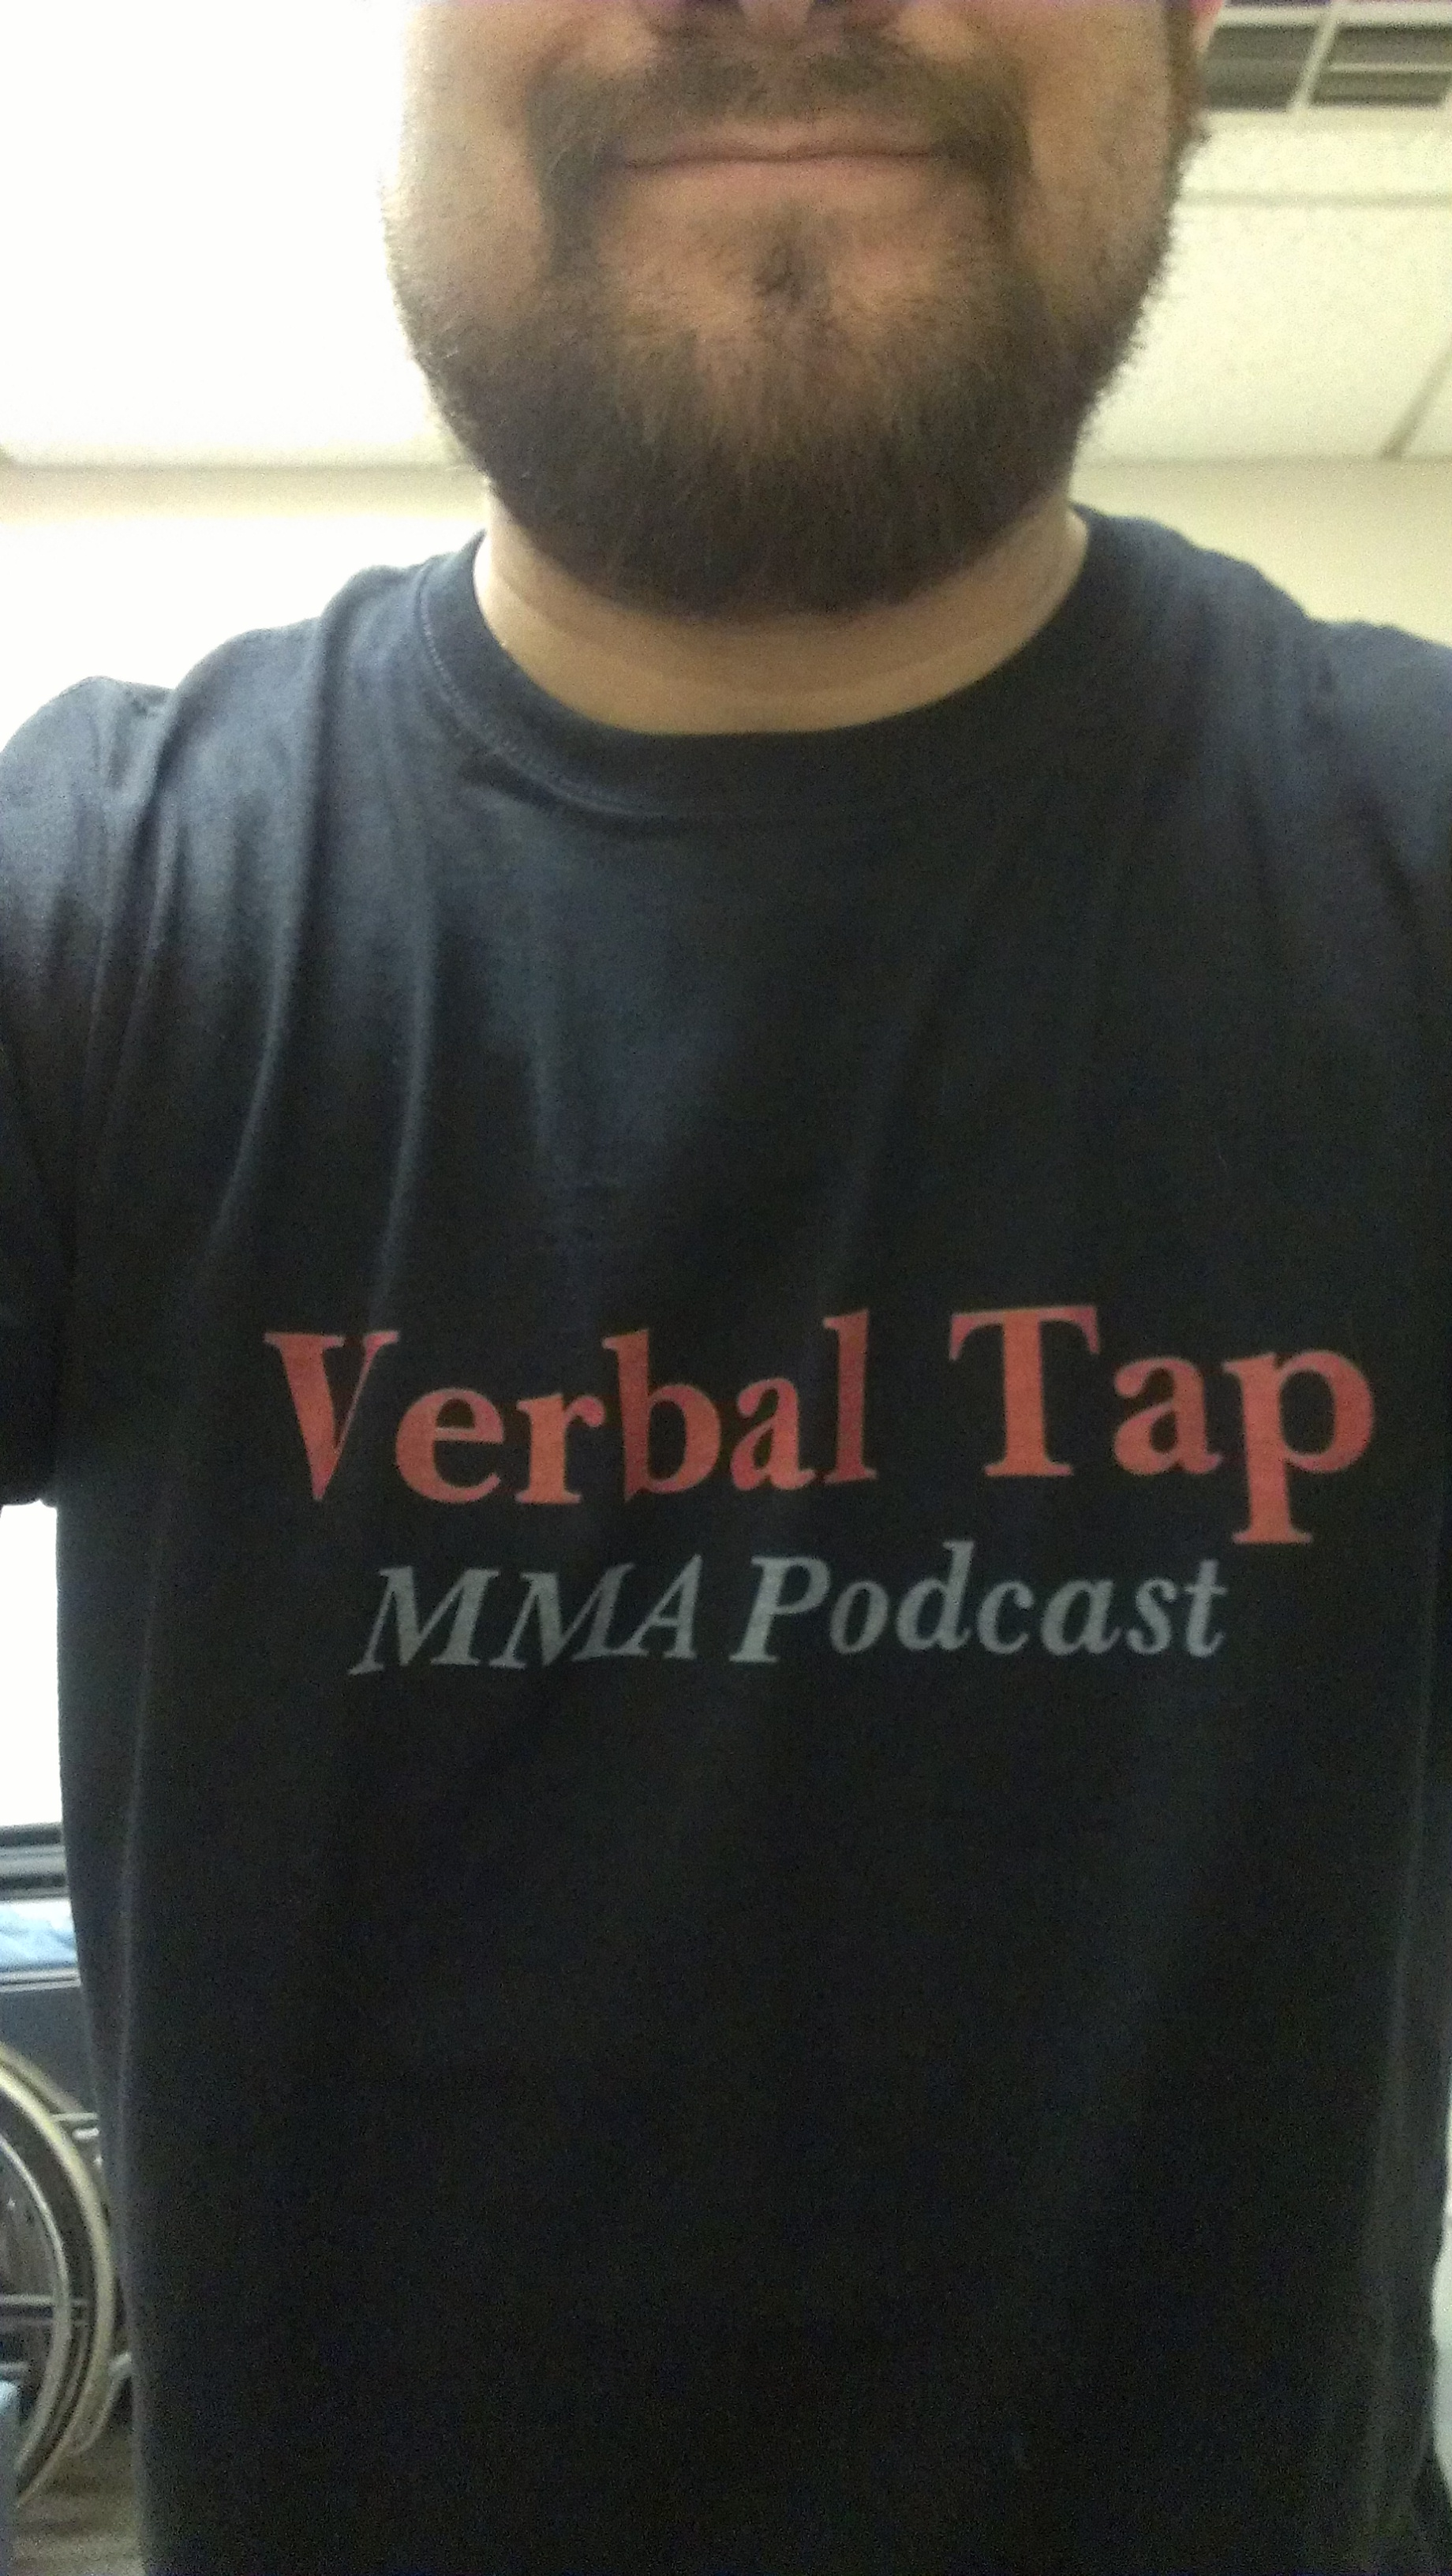 Raf, his beard, and his Verbal Tap T Shirt. What more could anyone need?